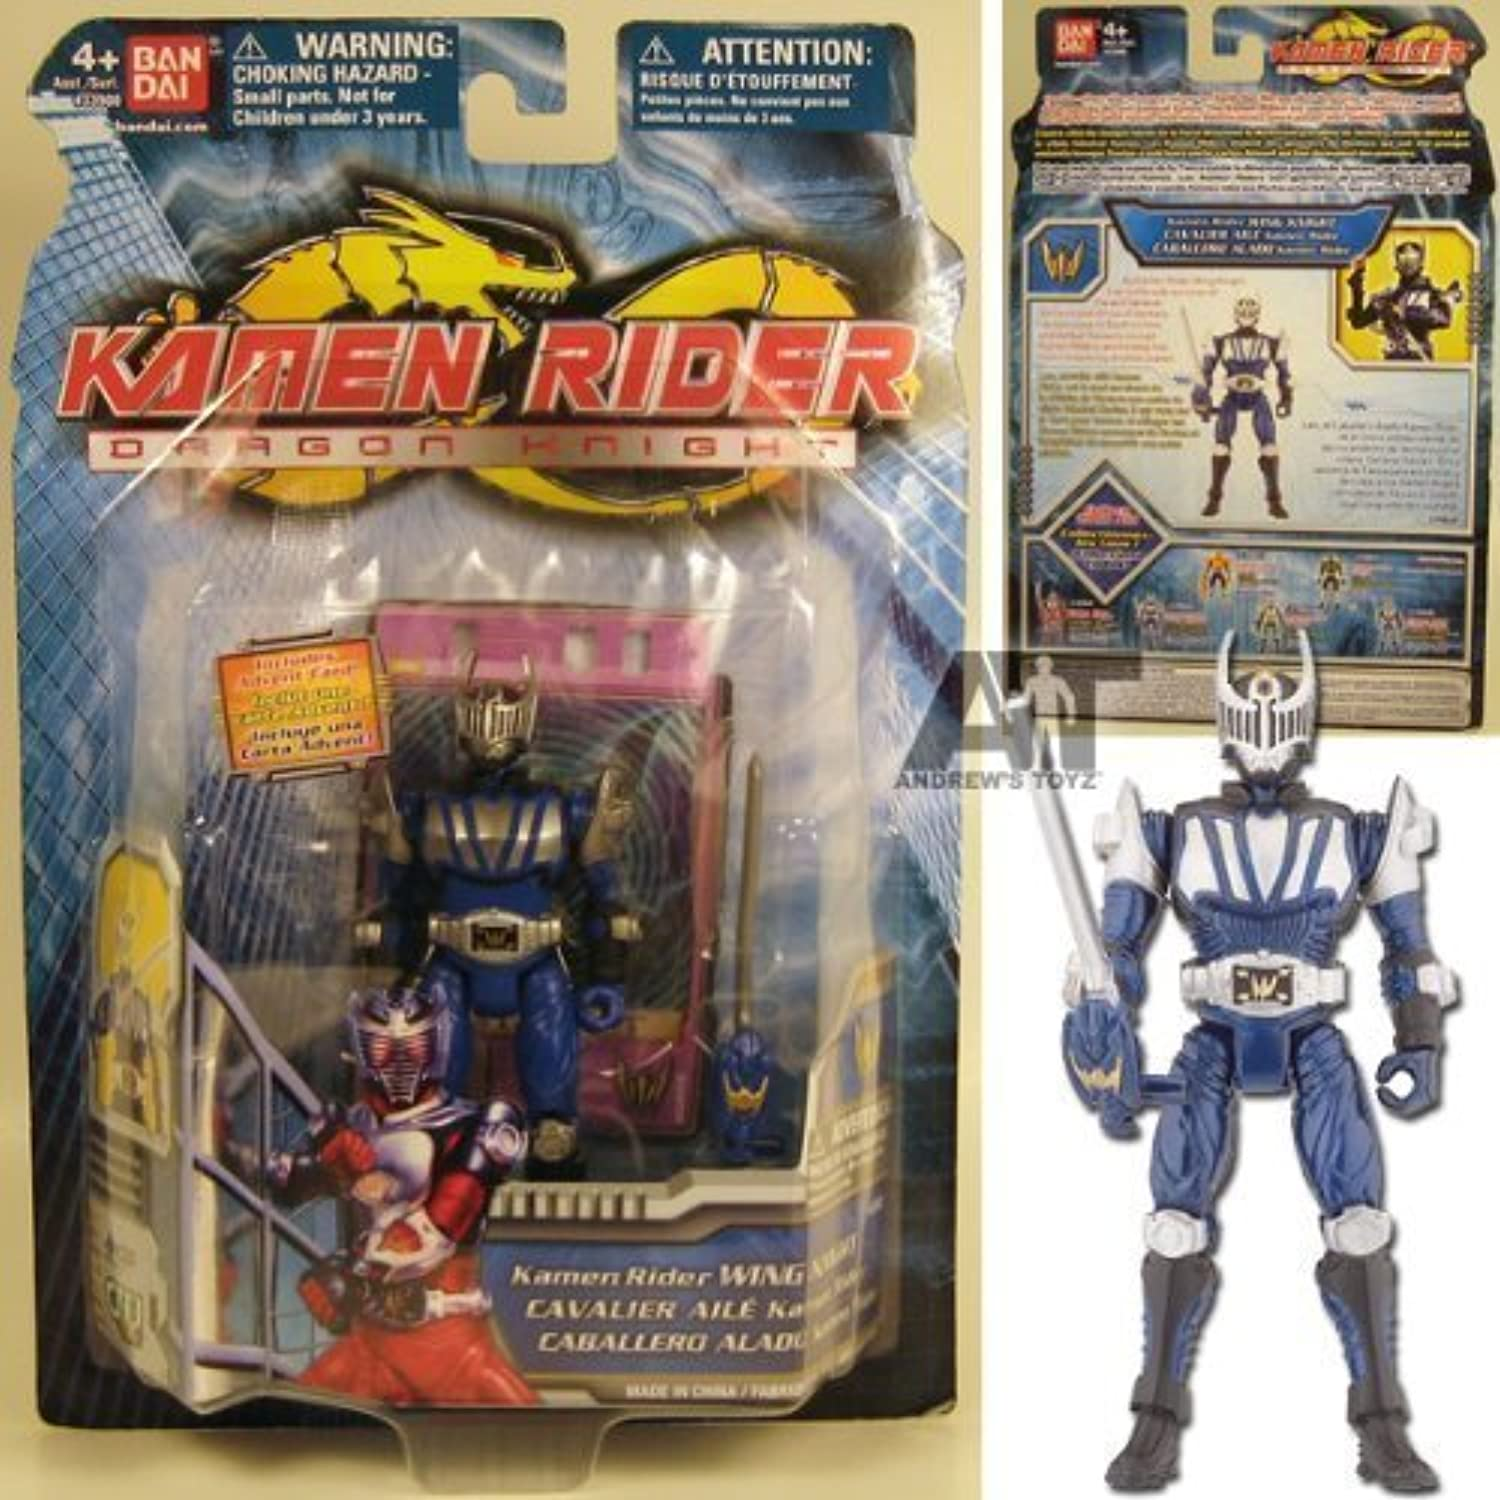 Kamen Rider Wing Knight 4 inch Collectible Figure